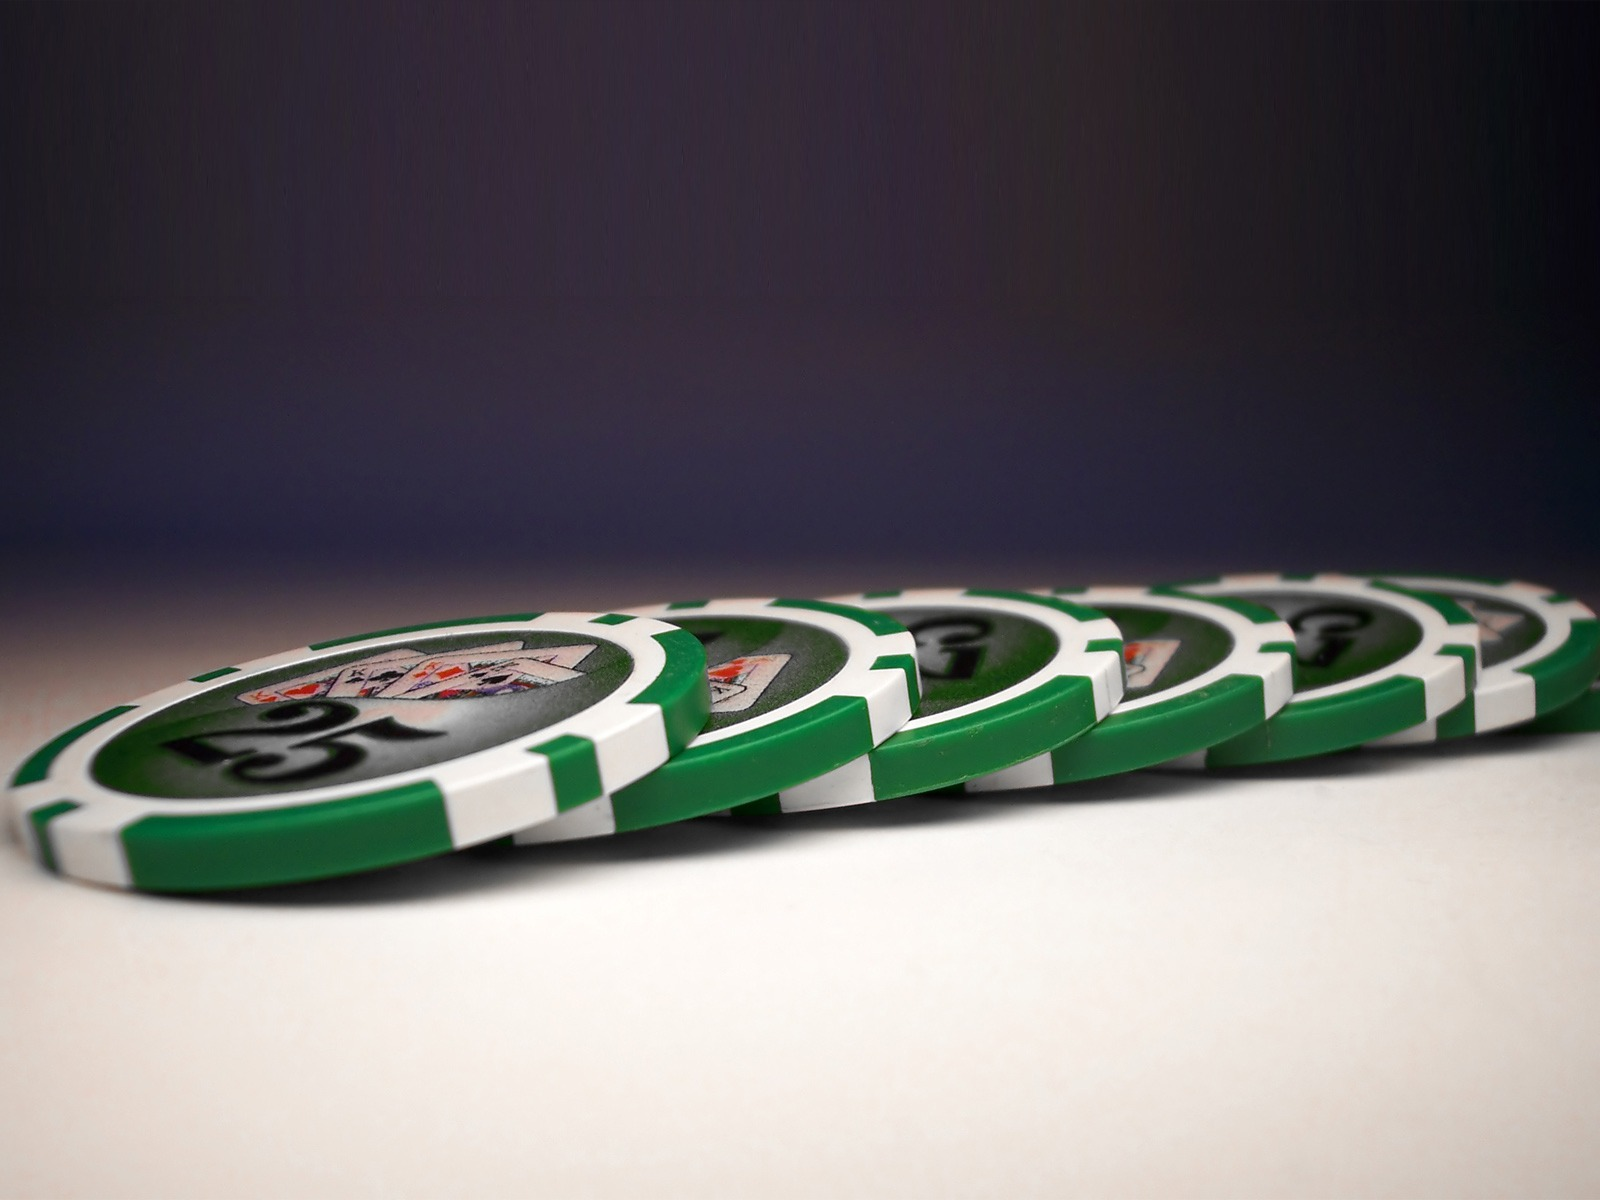 Green poker chips wallpapers Green poker chips stock photos 1600x1200